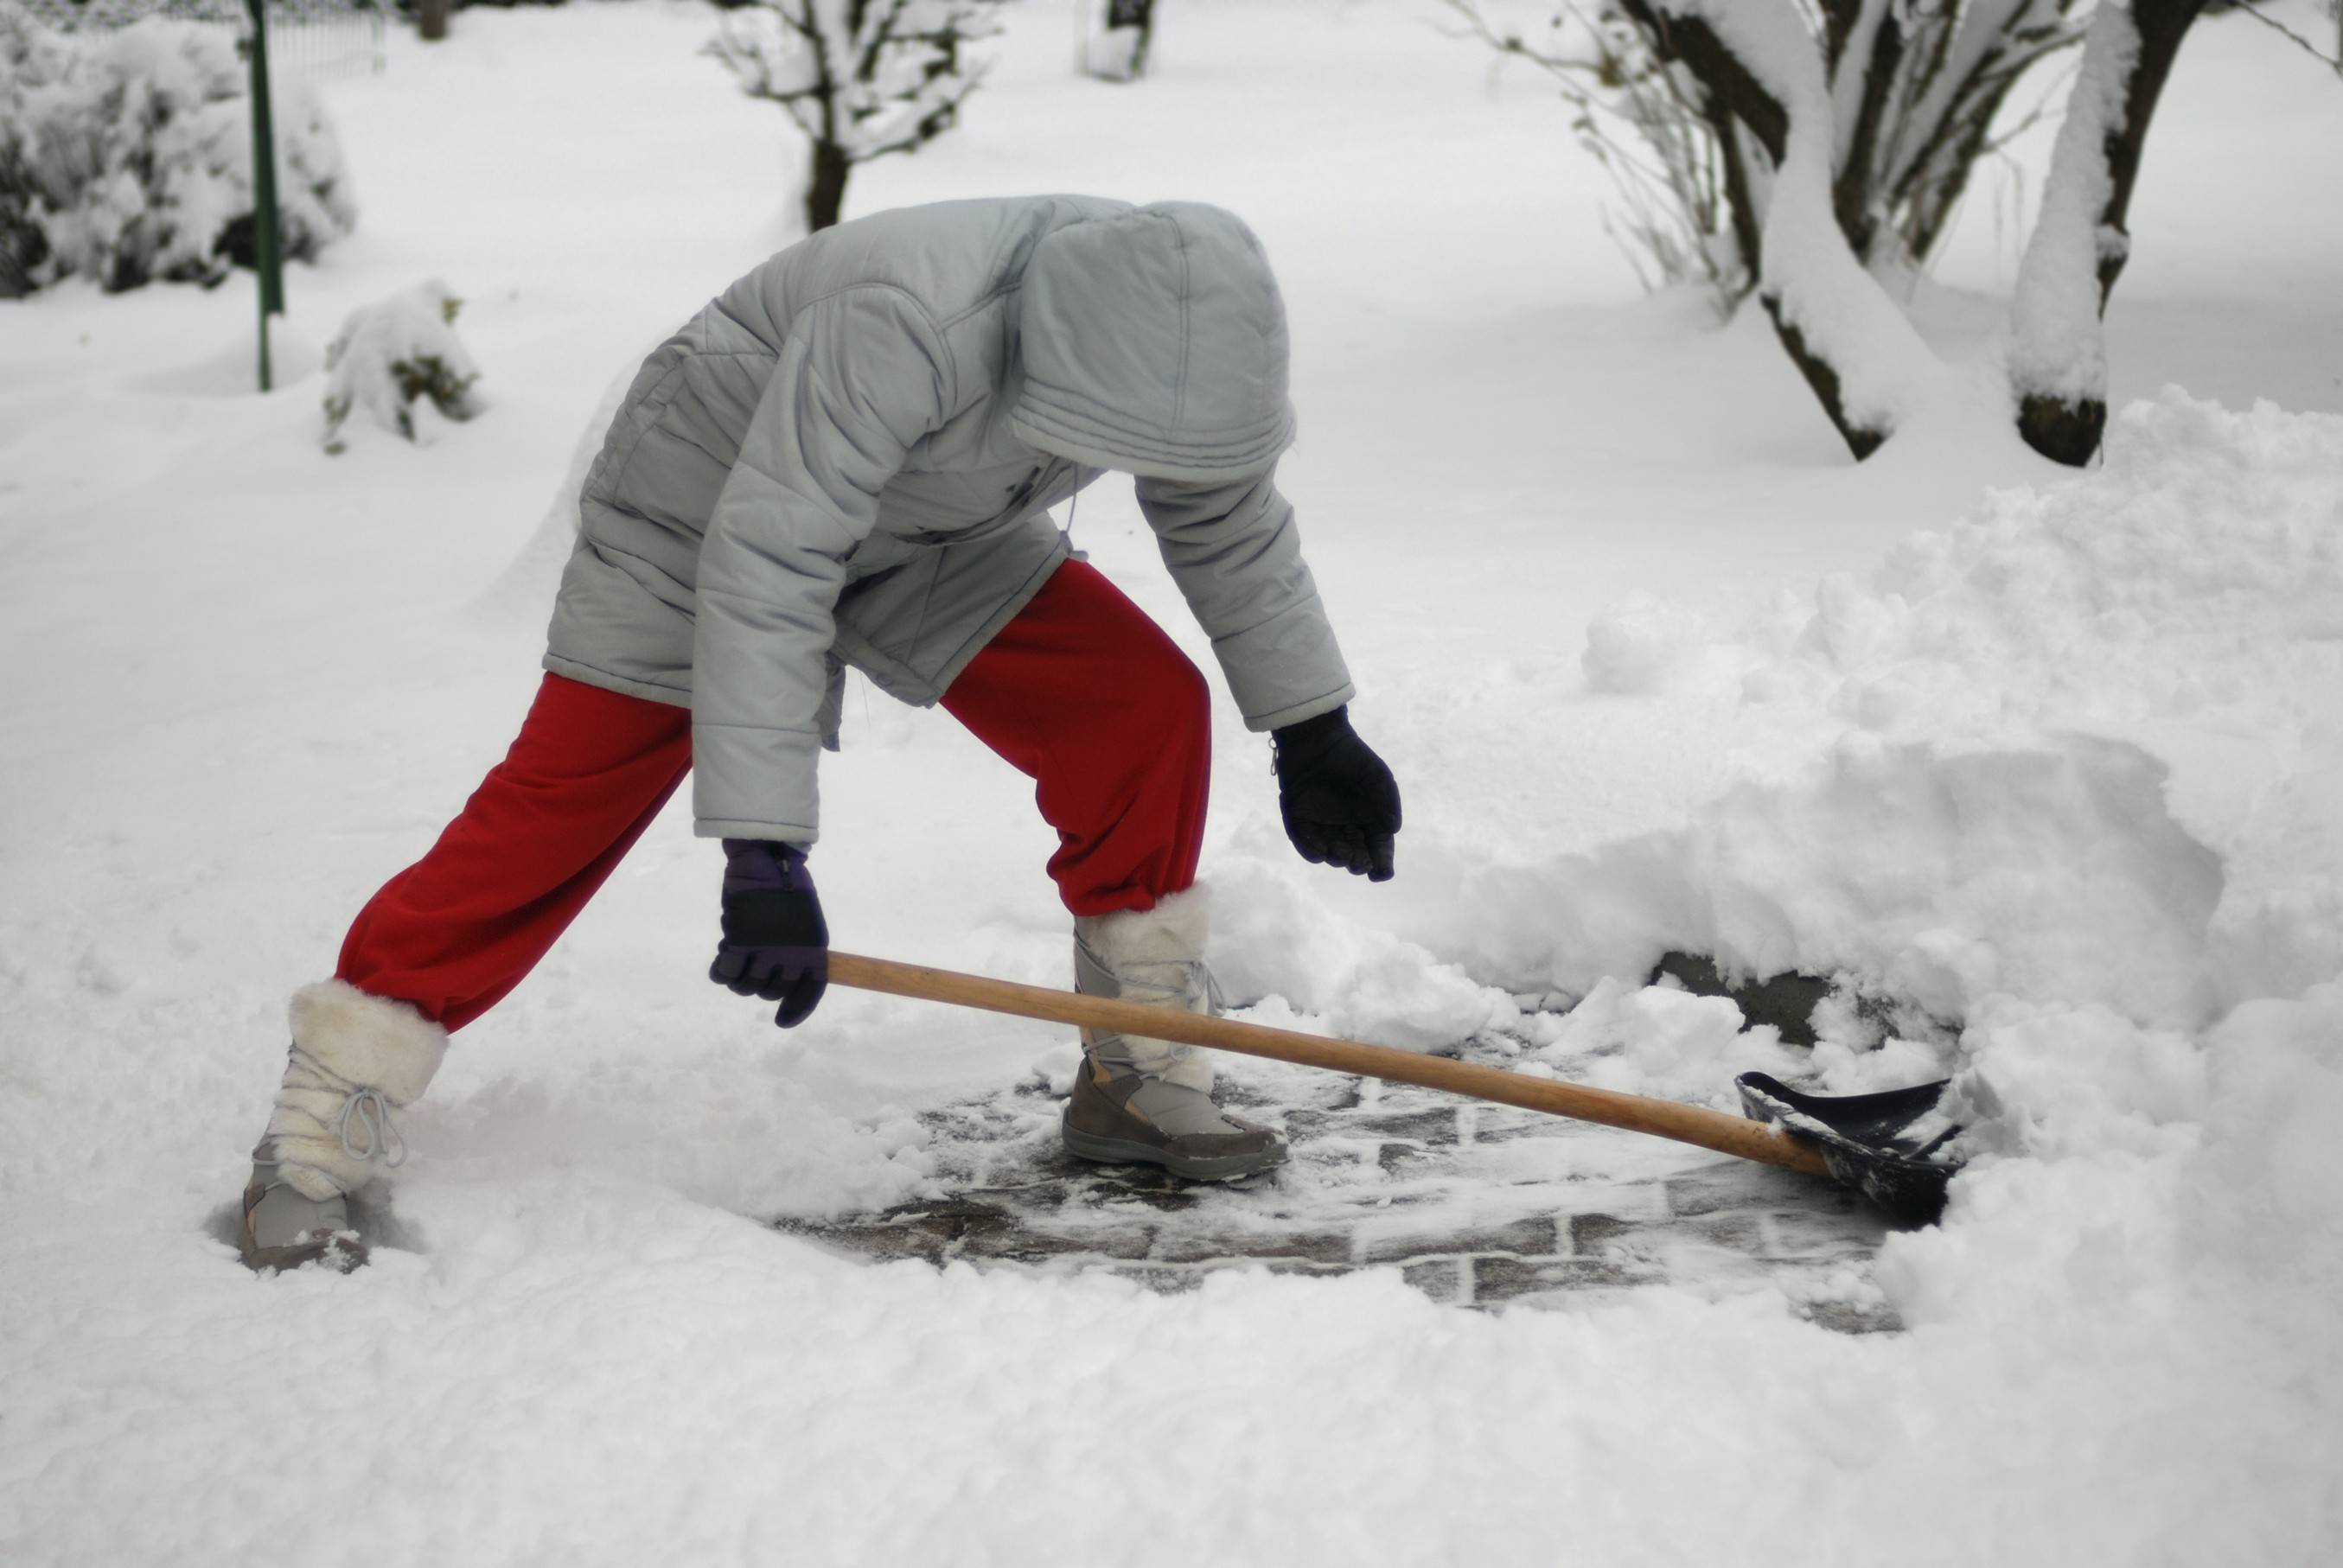 One act of kindness you can do for someone with health issues is to shovel their driveway and walkway, or arrange to have it shoveled.